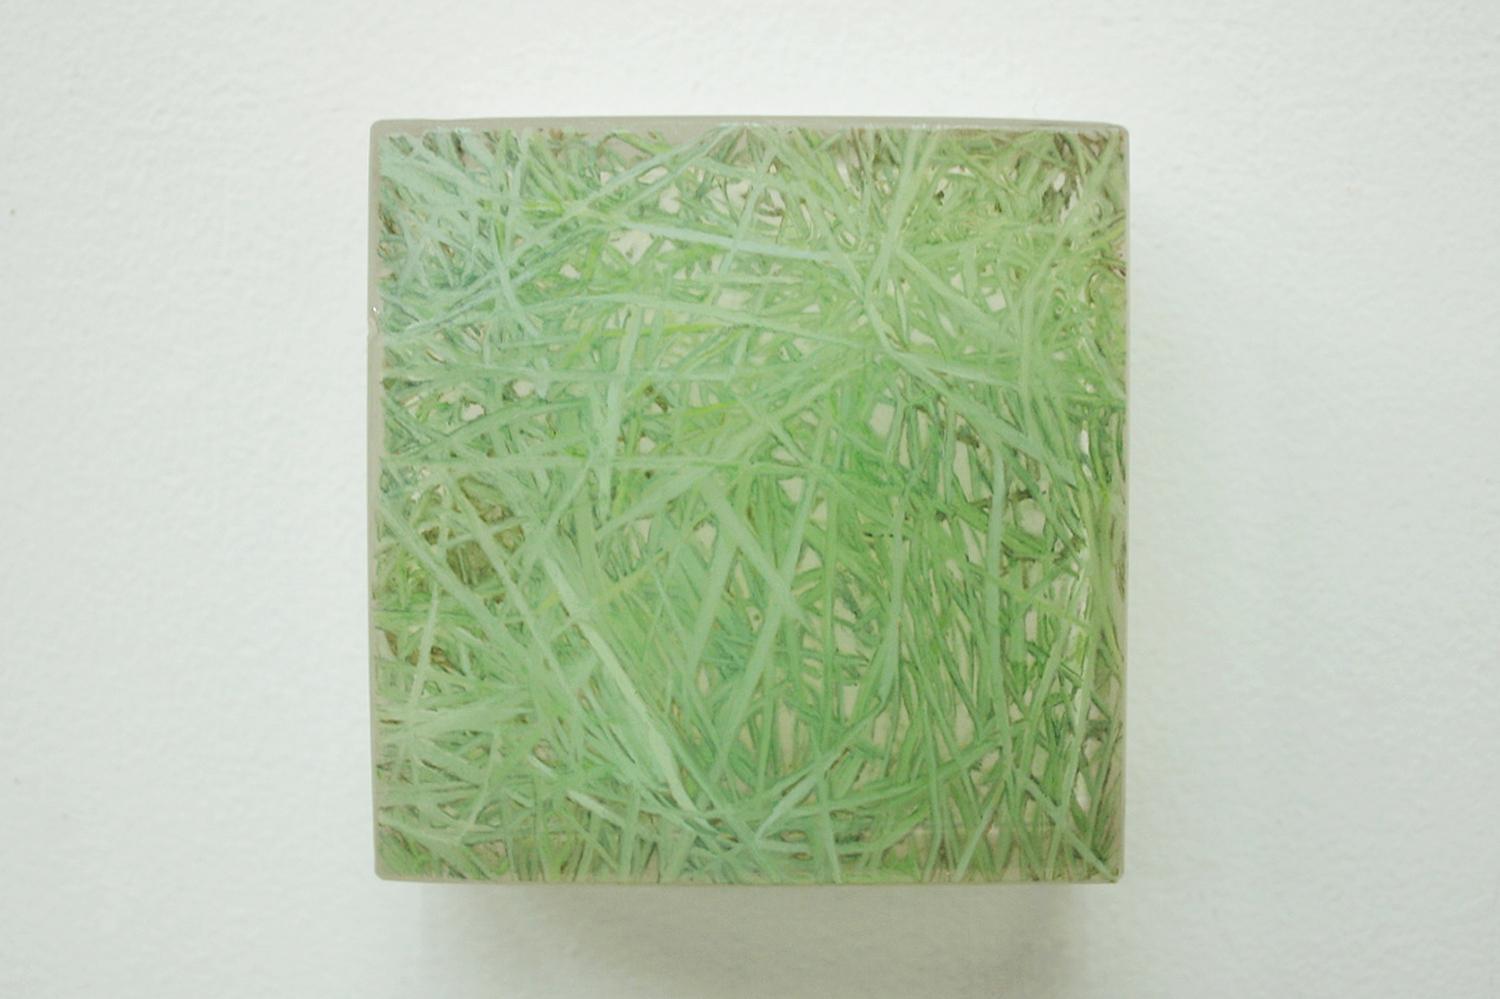 Photo-painting 草上のかおり−5|Scent on the grass-5 |7.5 x 7.5 x 3 cm|Oil on FRP, mixed media| 2009